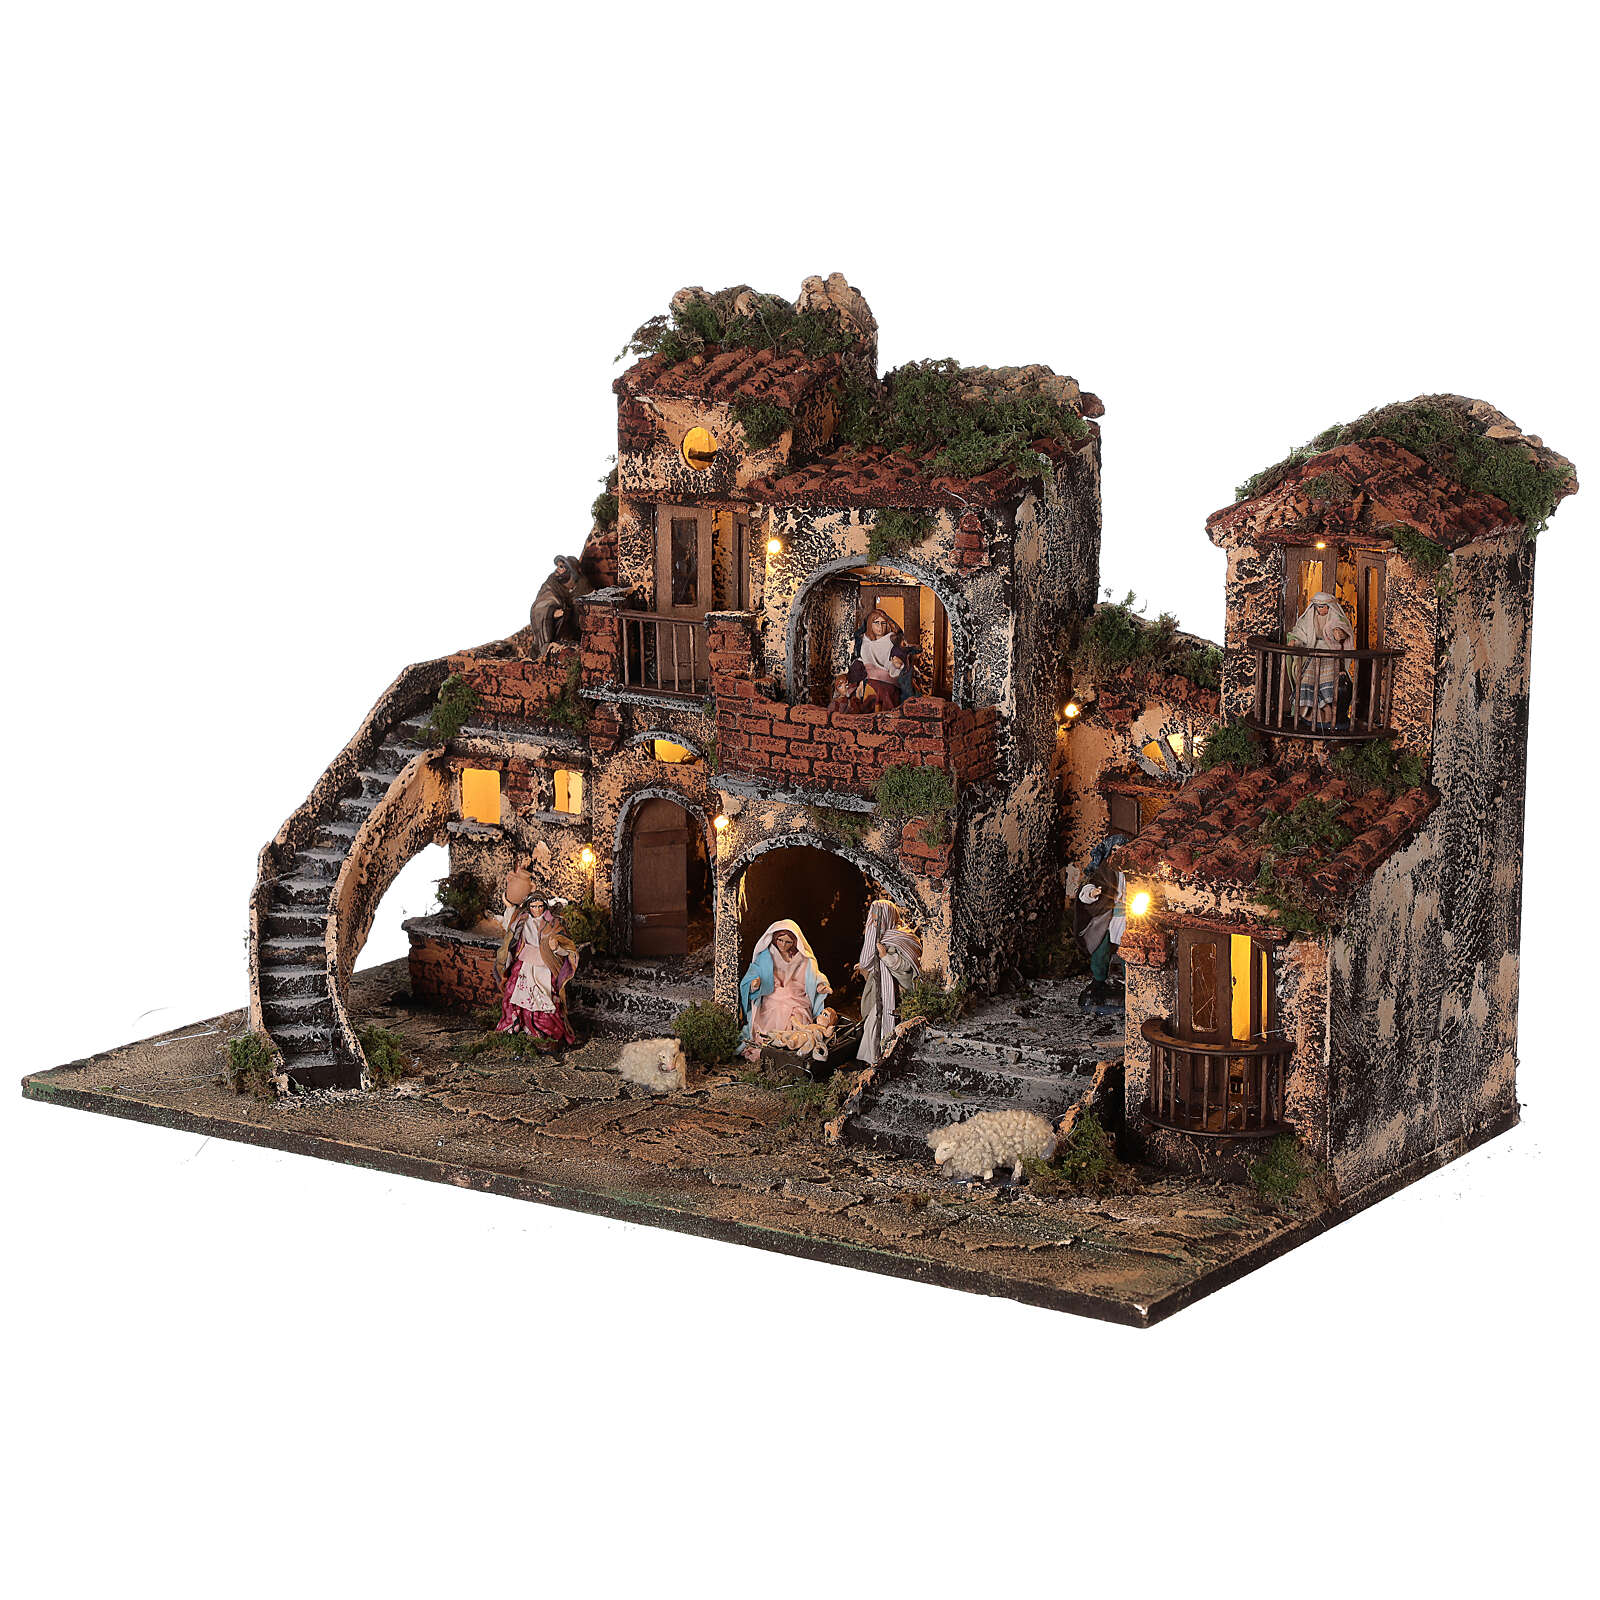 Complete Neapolitan Nativity Scene with lights fountain and balconies 40x60x35 cm for figurines of 8 cm average height 4